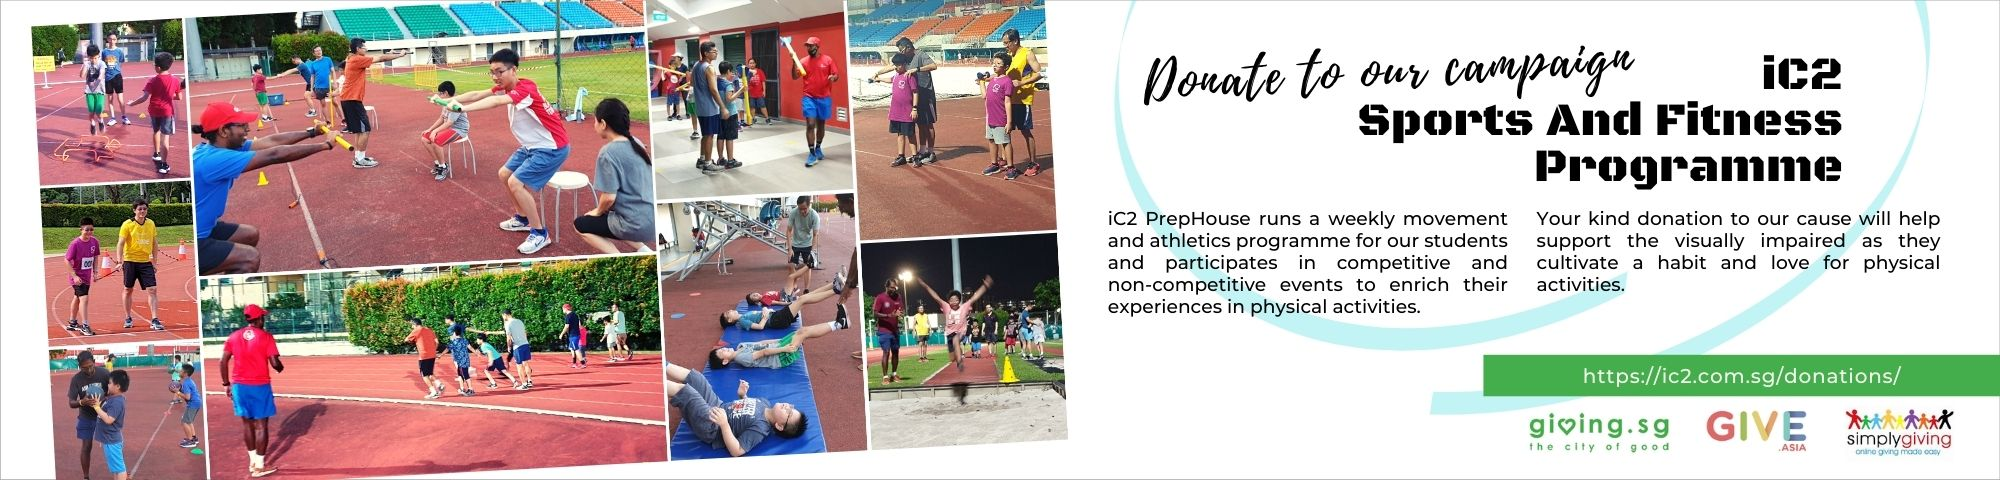 Kindly donate to iC2 Sports And Fitness programme campaign at https://ic2.com.sg/donations/